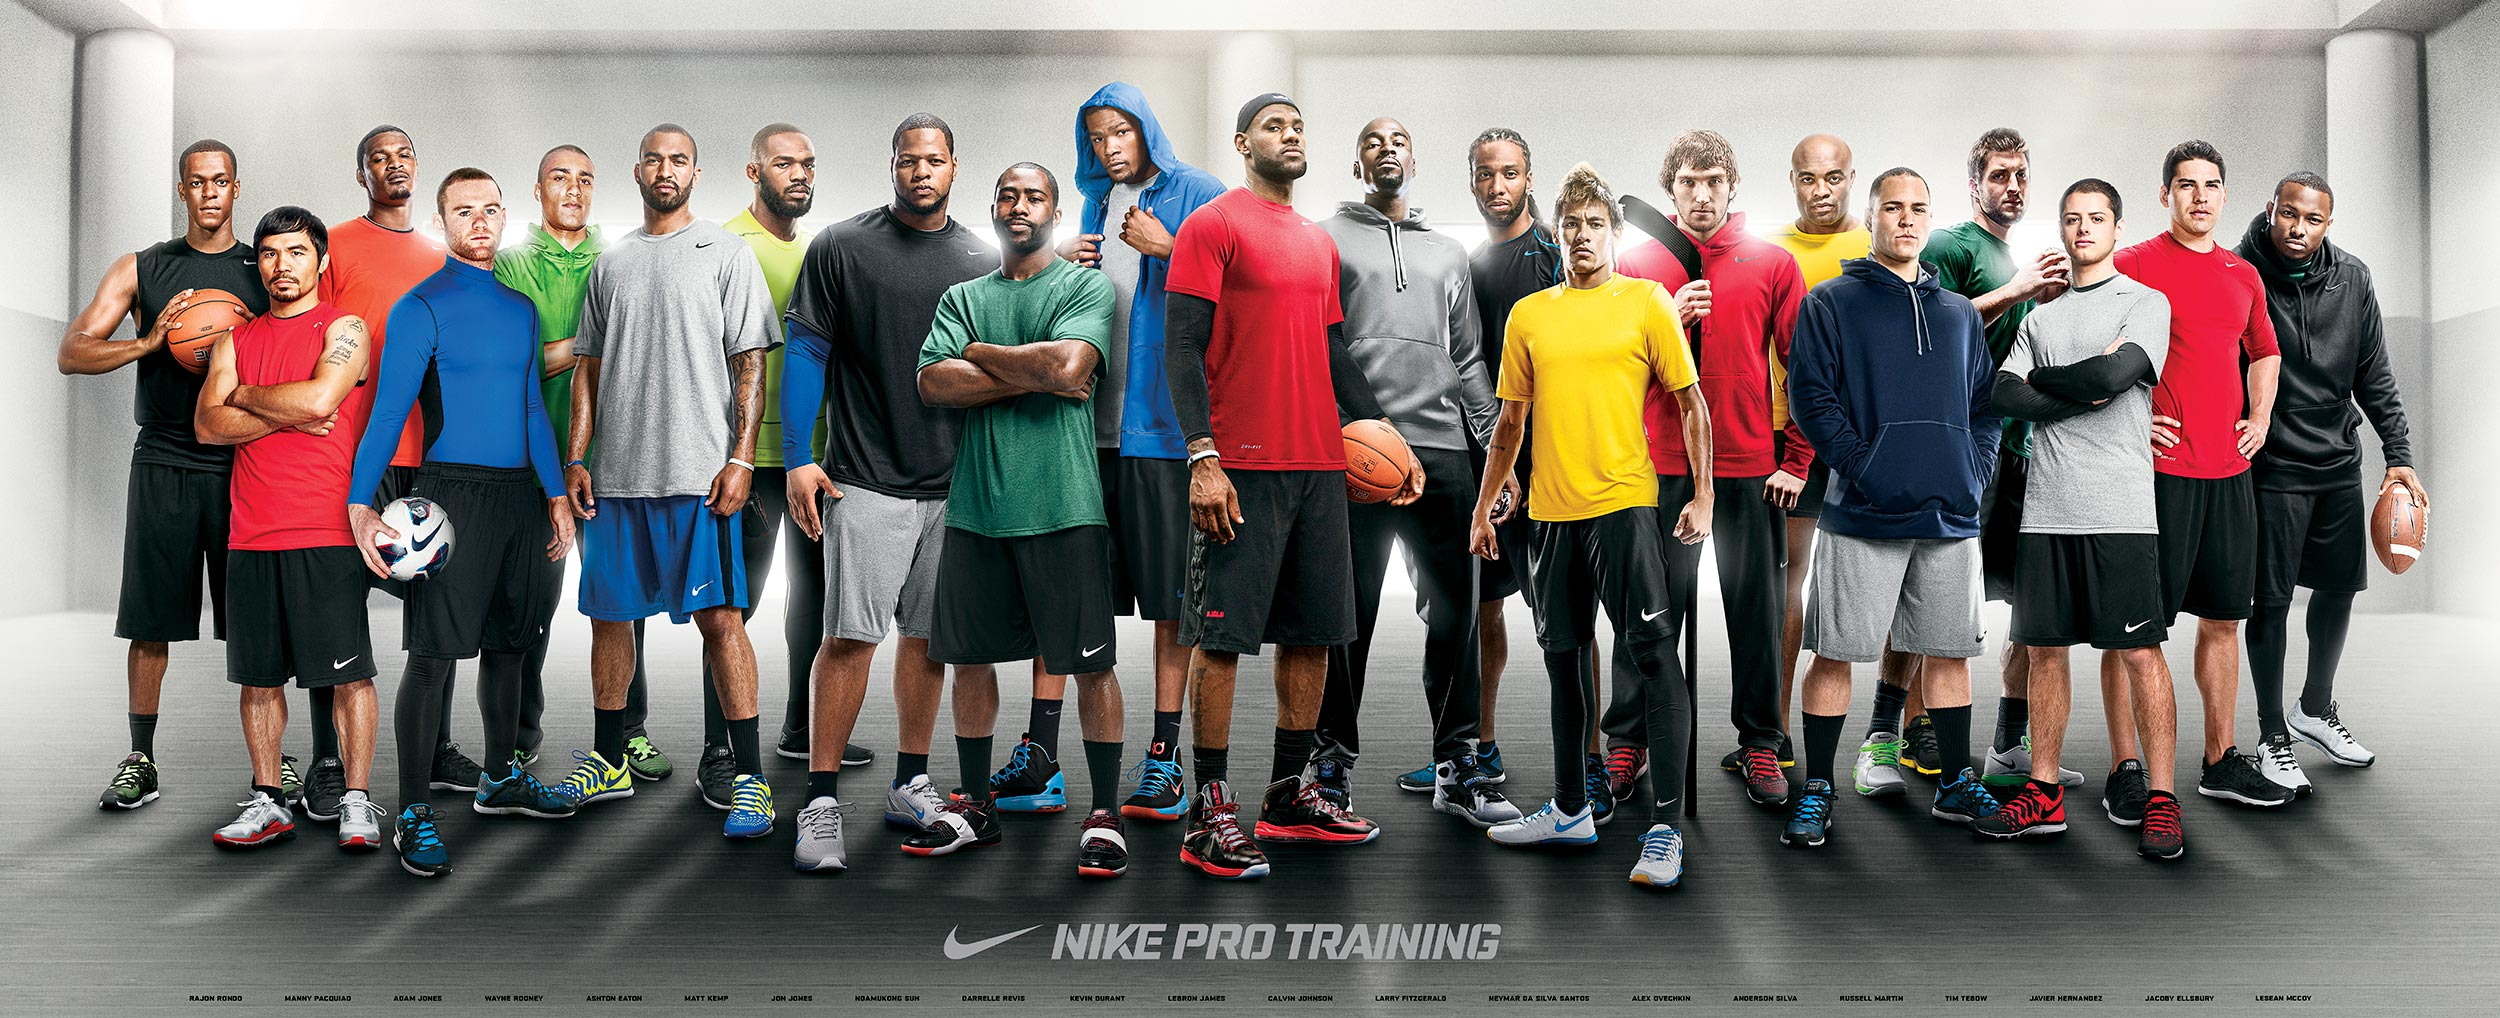 NIKE_AT_NPT_Poster_After.jpg